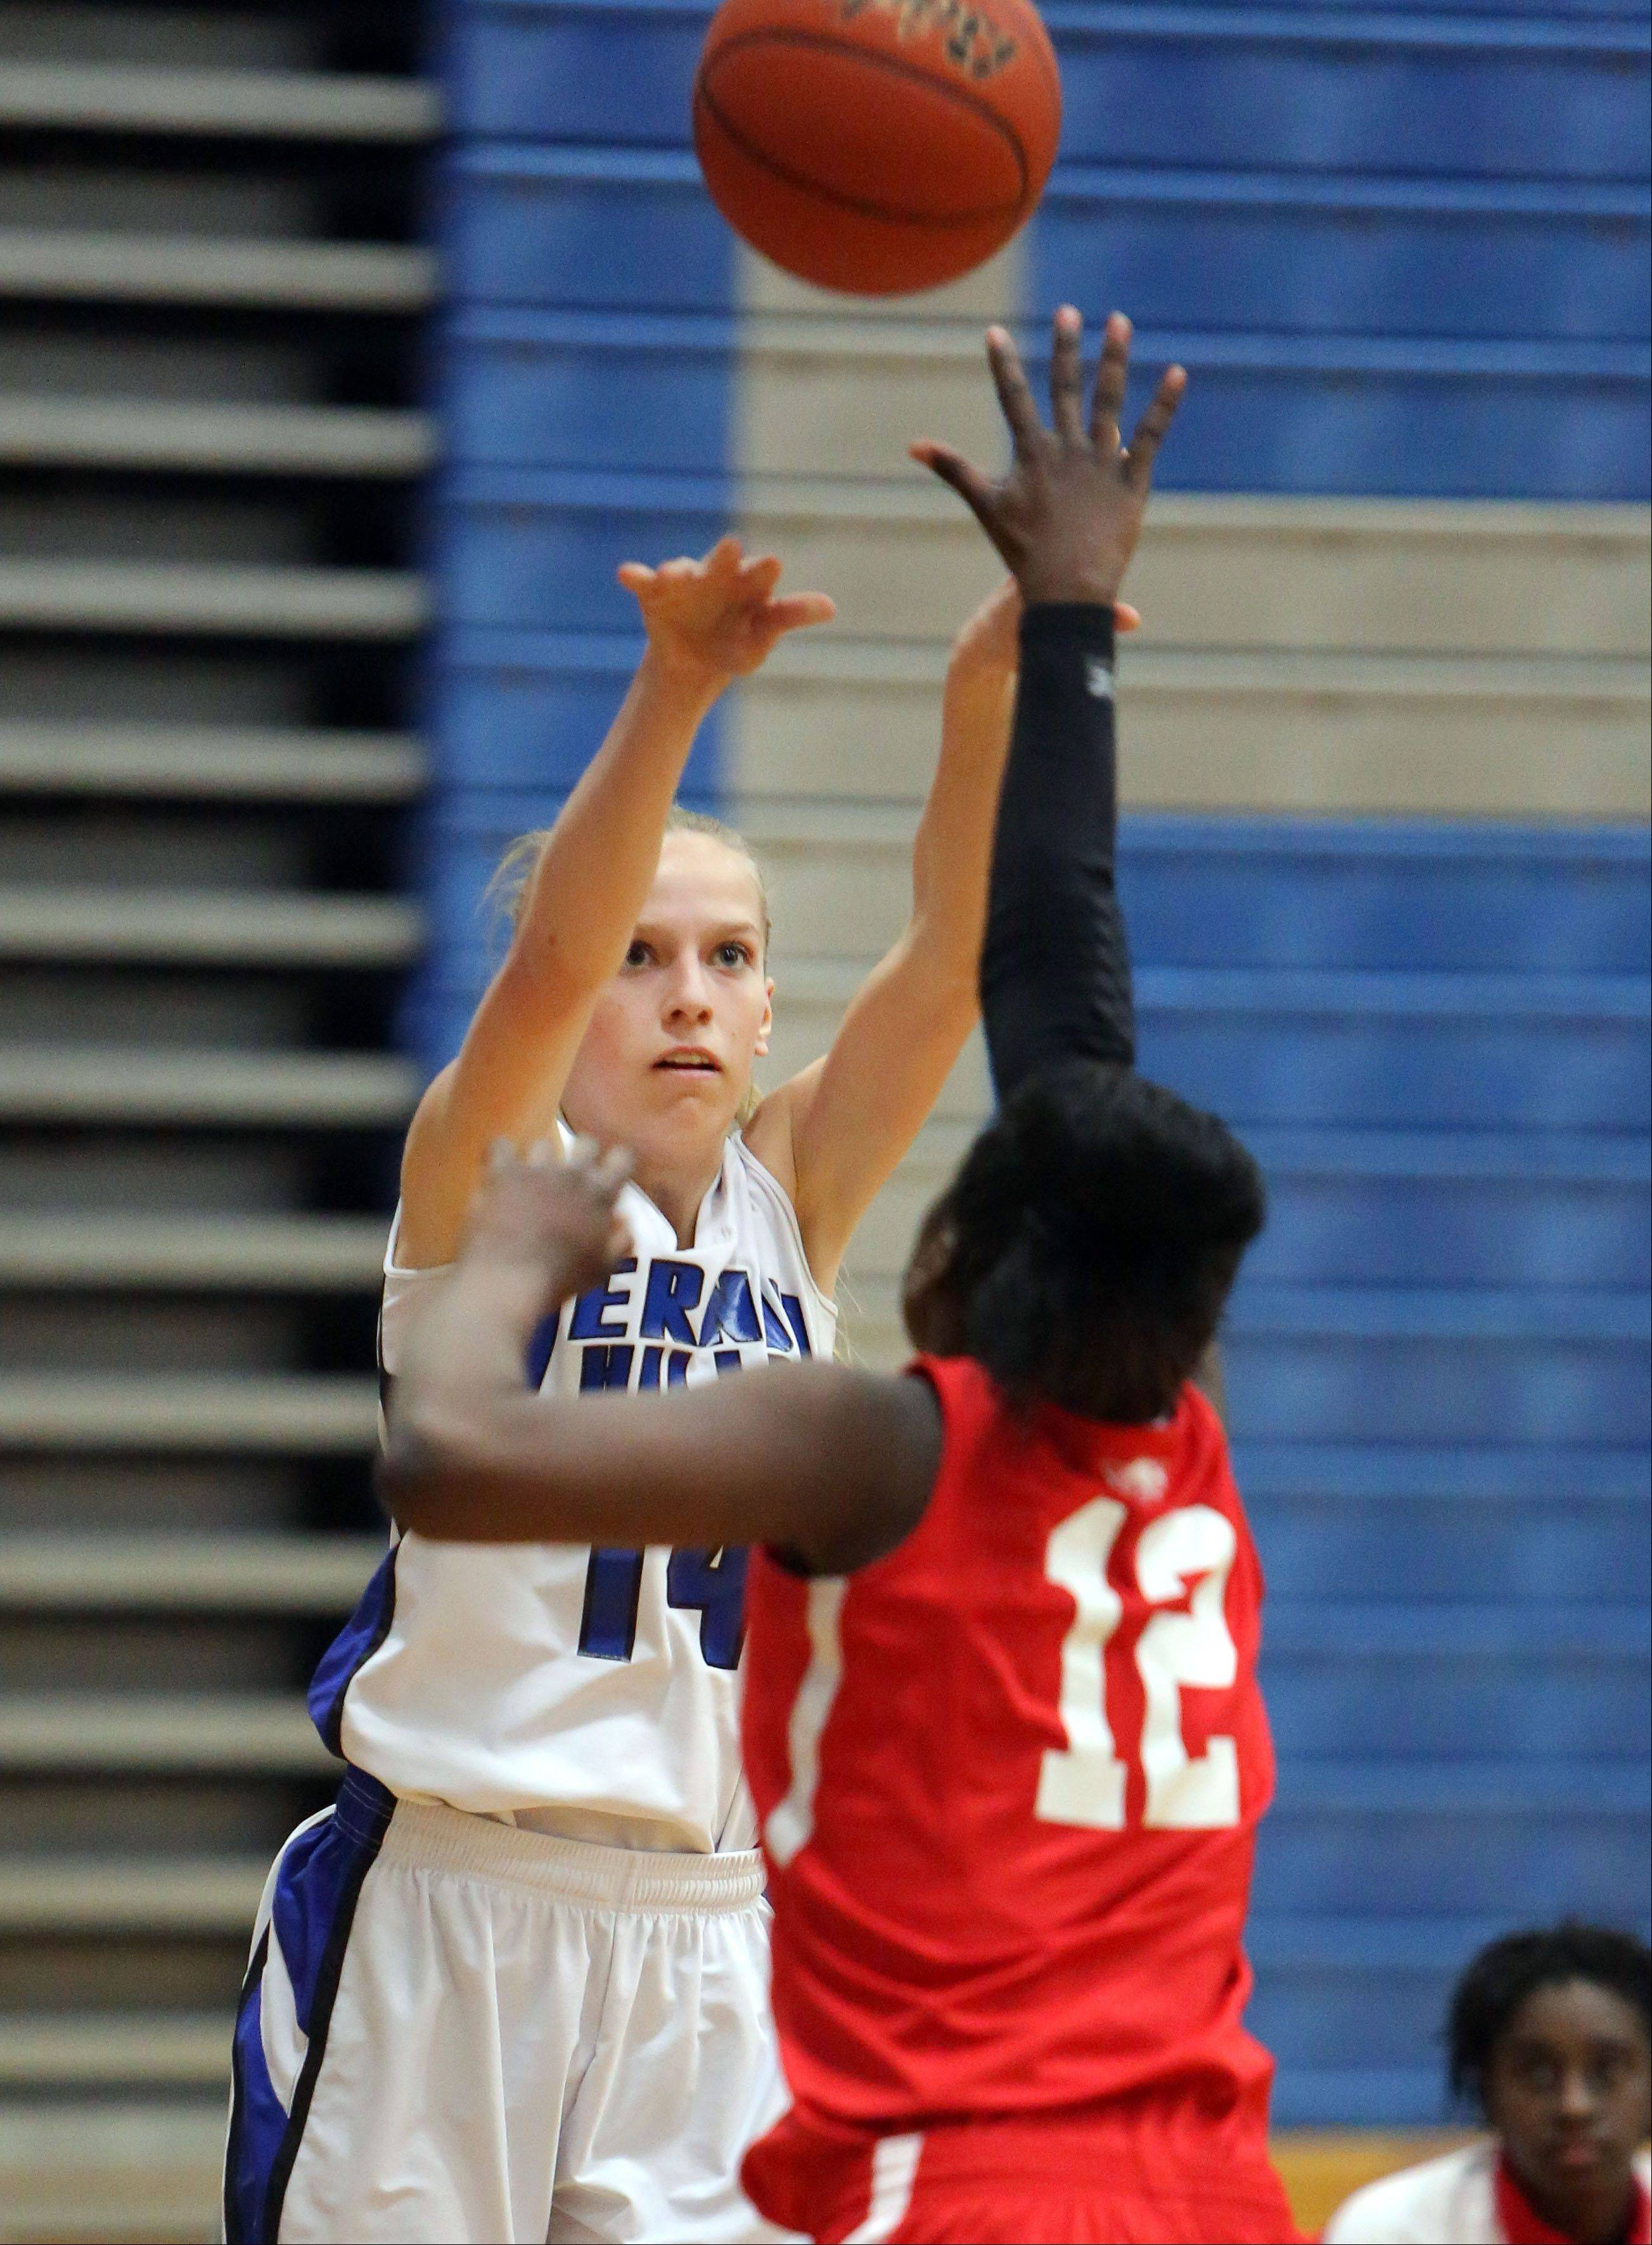 Vernon Hills' Kasey Firnbach, left, shoots over North Chicago's Kaylah Collins on Wednesday at Vernon Hills.